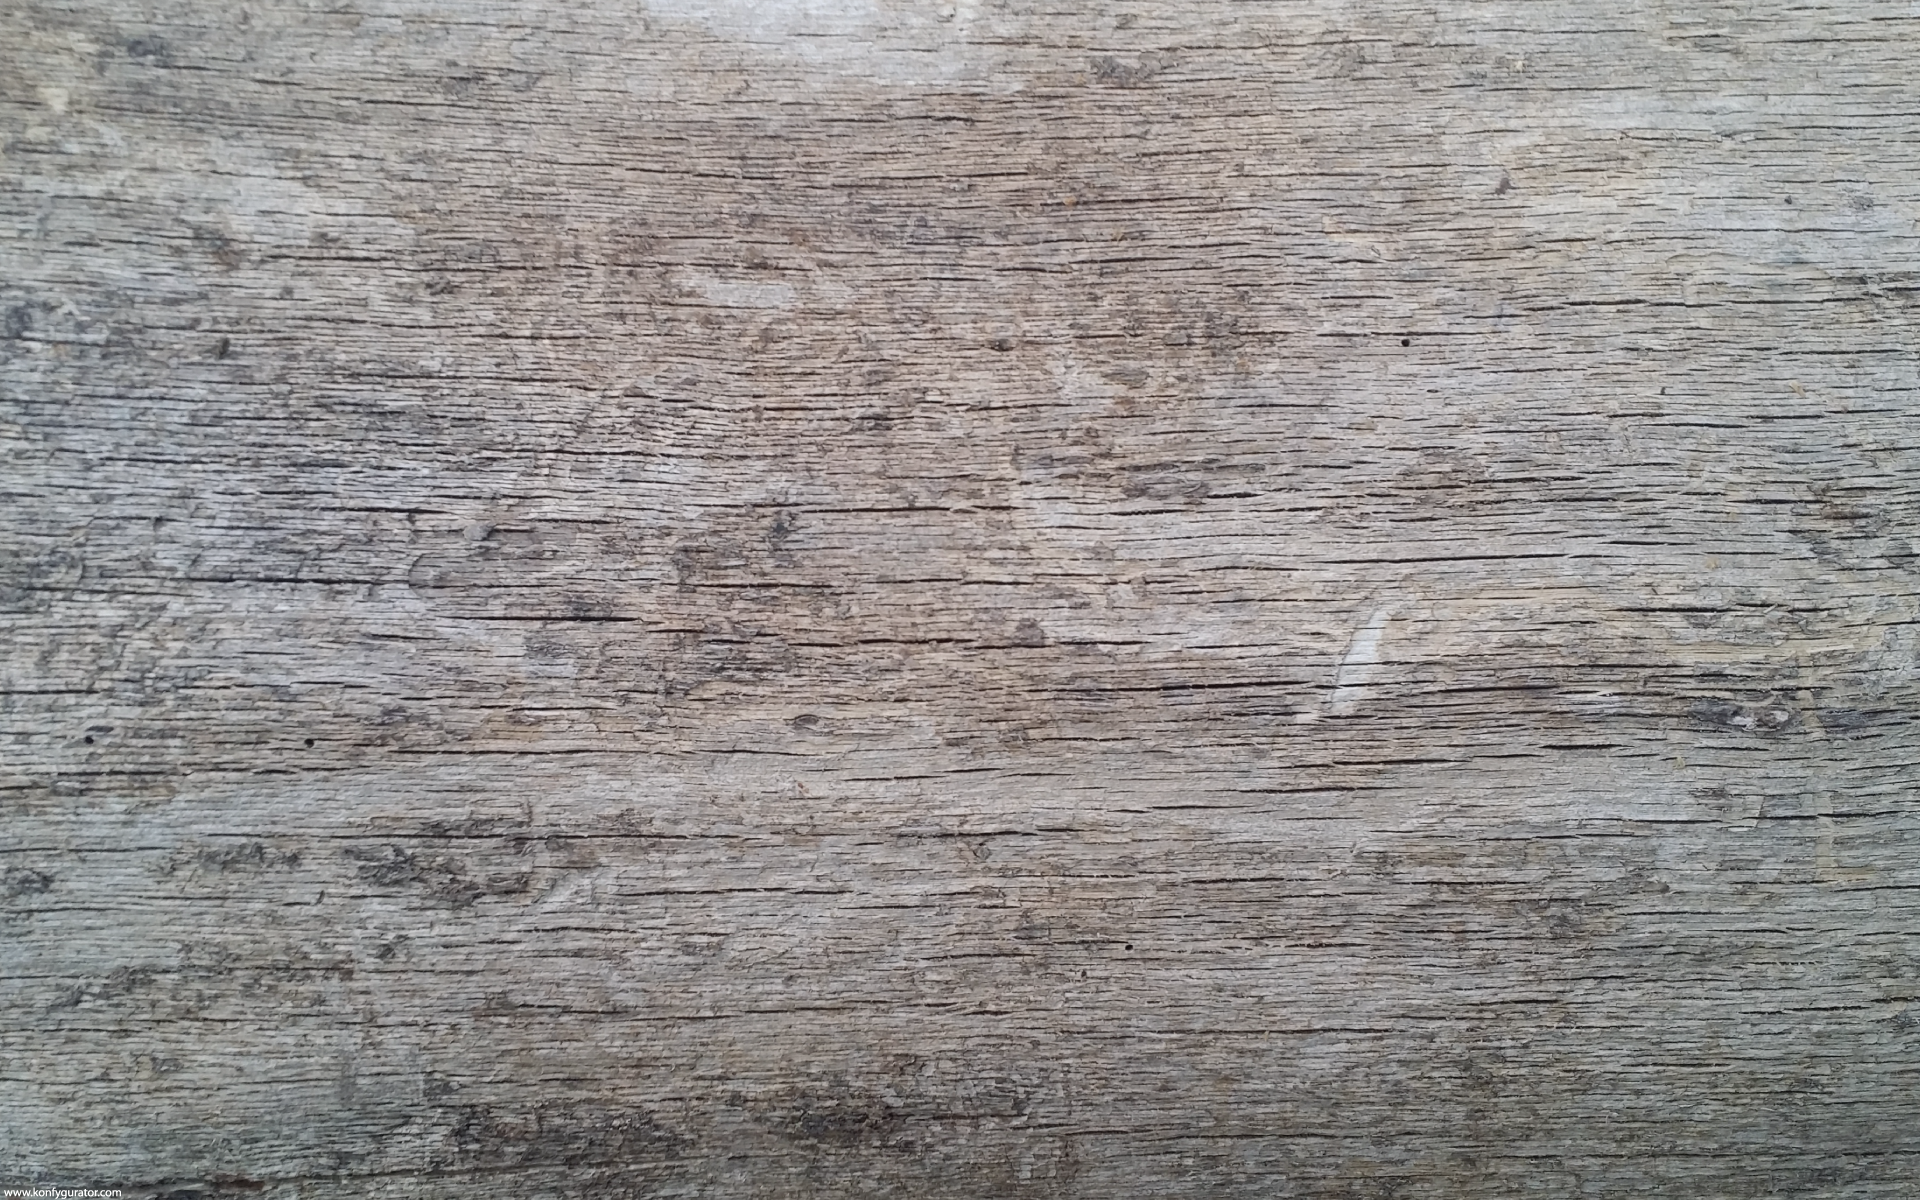 HD Wallpapers - Textures - horizontal, gray, wood